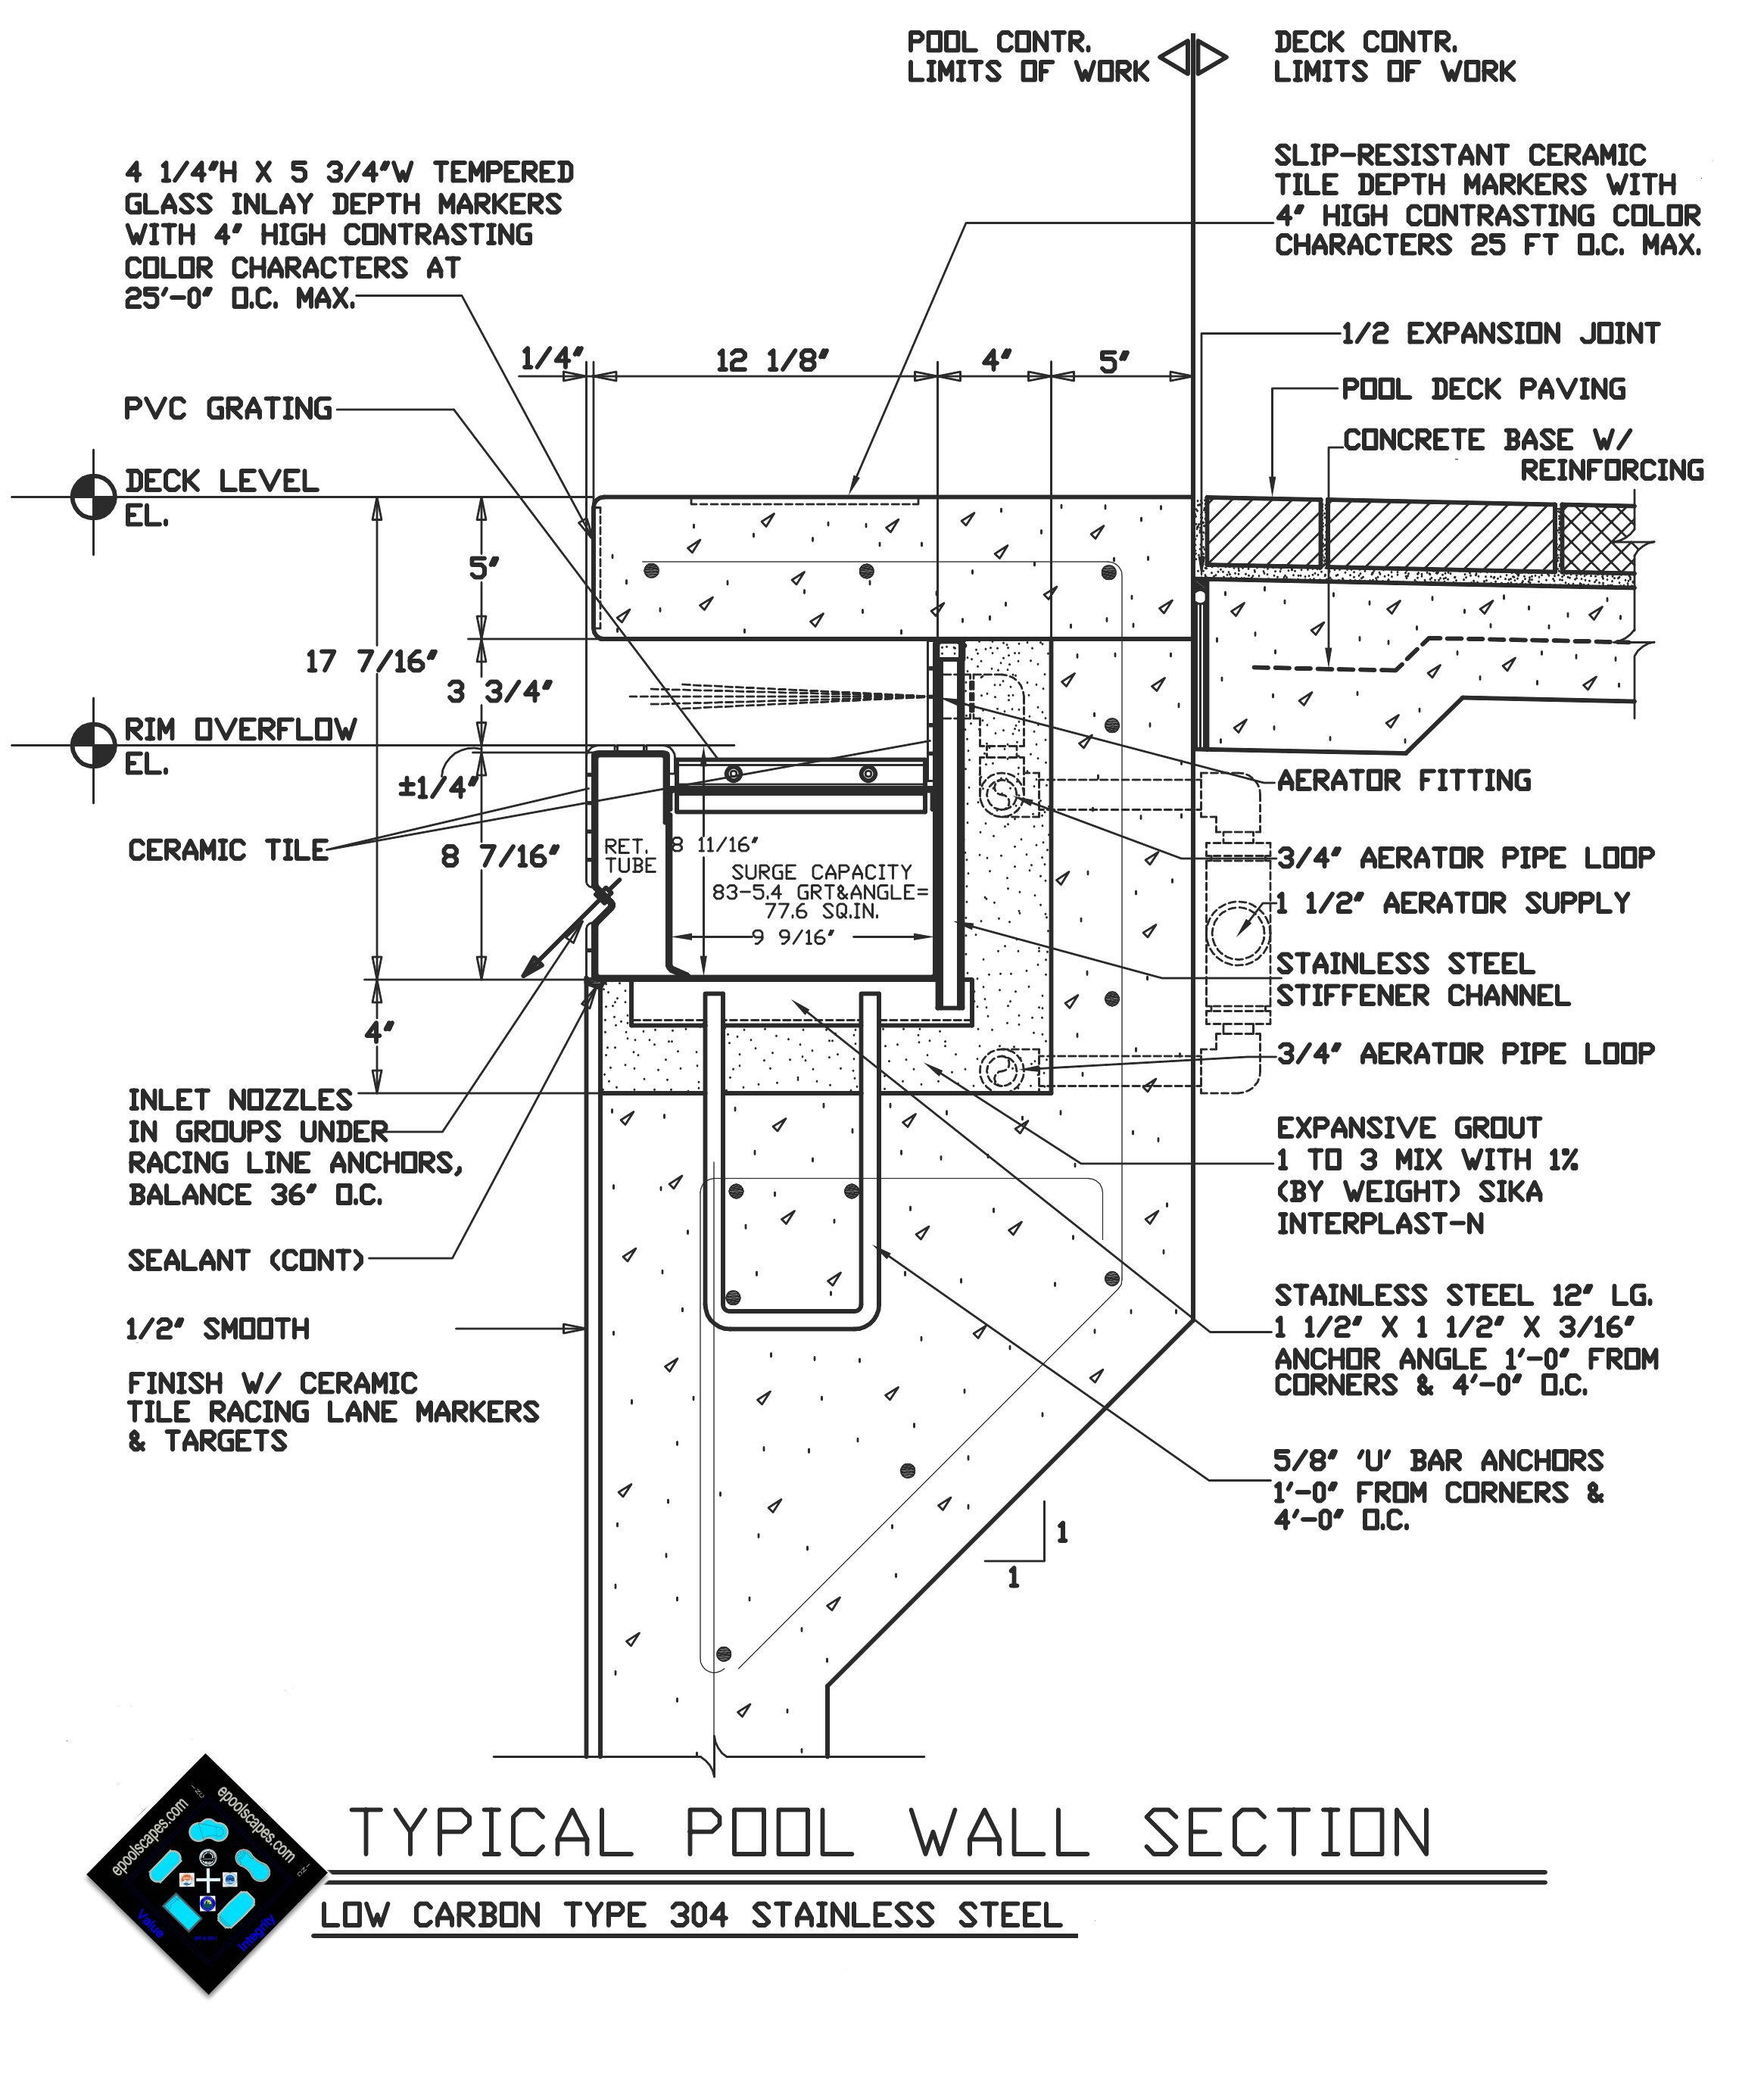 Swimming Pool Construction Detail Drawings : Swimming pool autocad drawing details … pinteres…